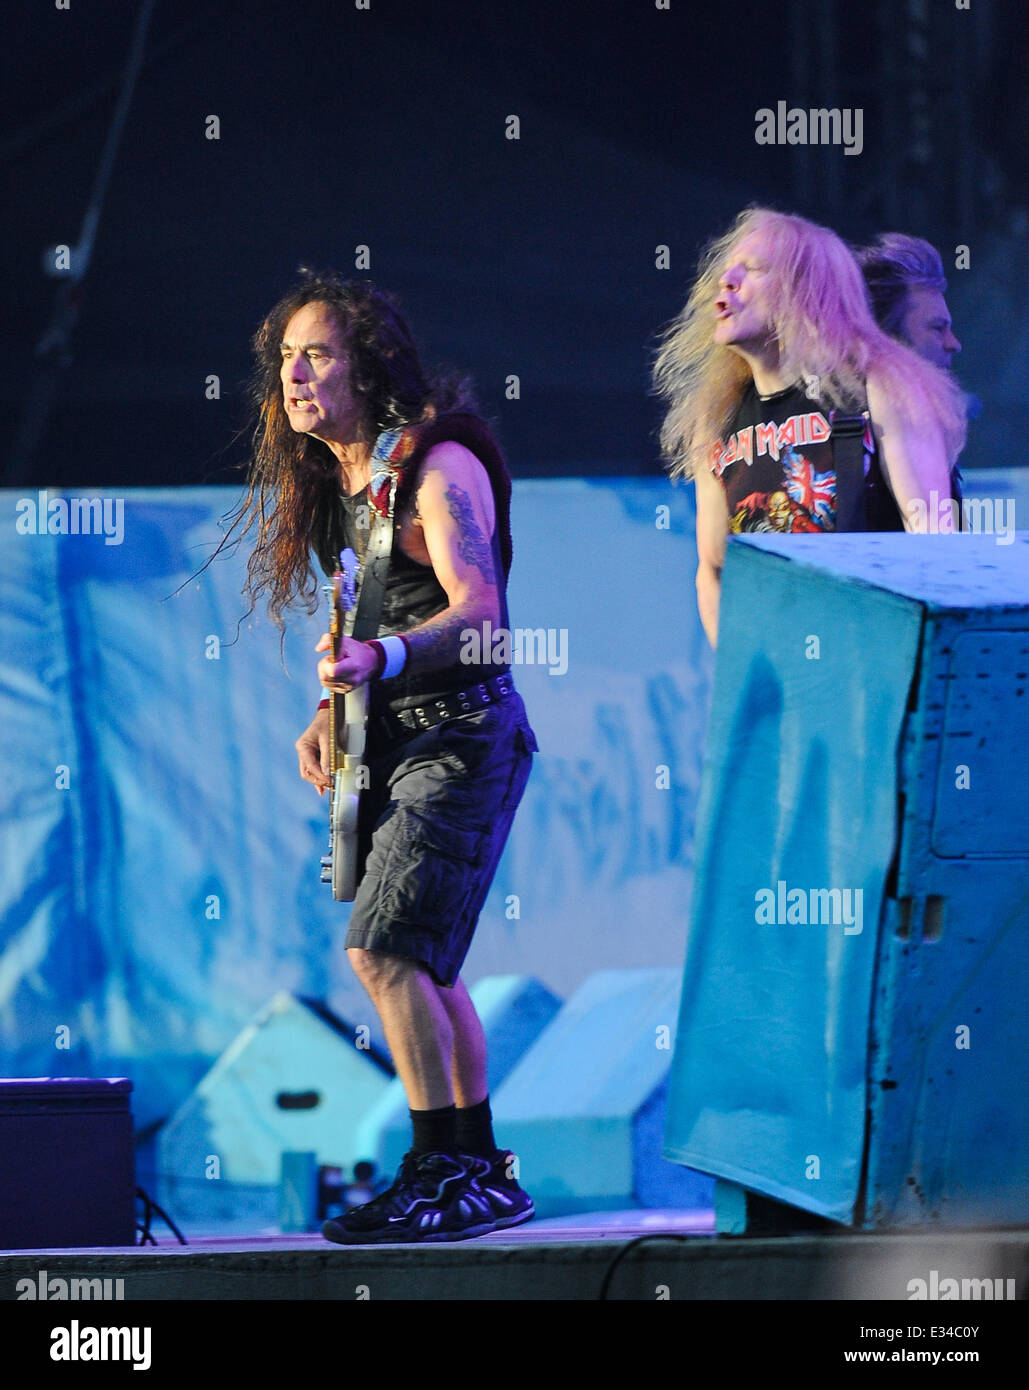 Iron maiden perform at download festival 2013 featuring: steve.